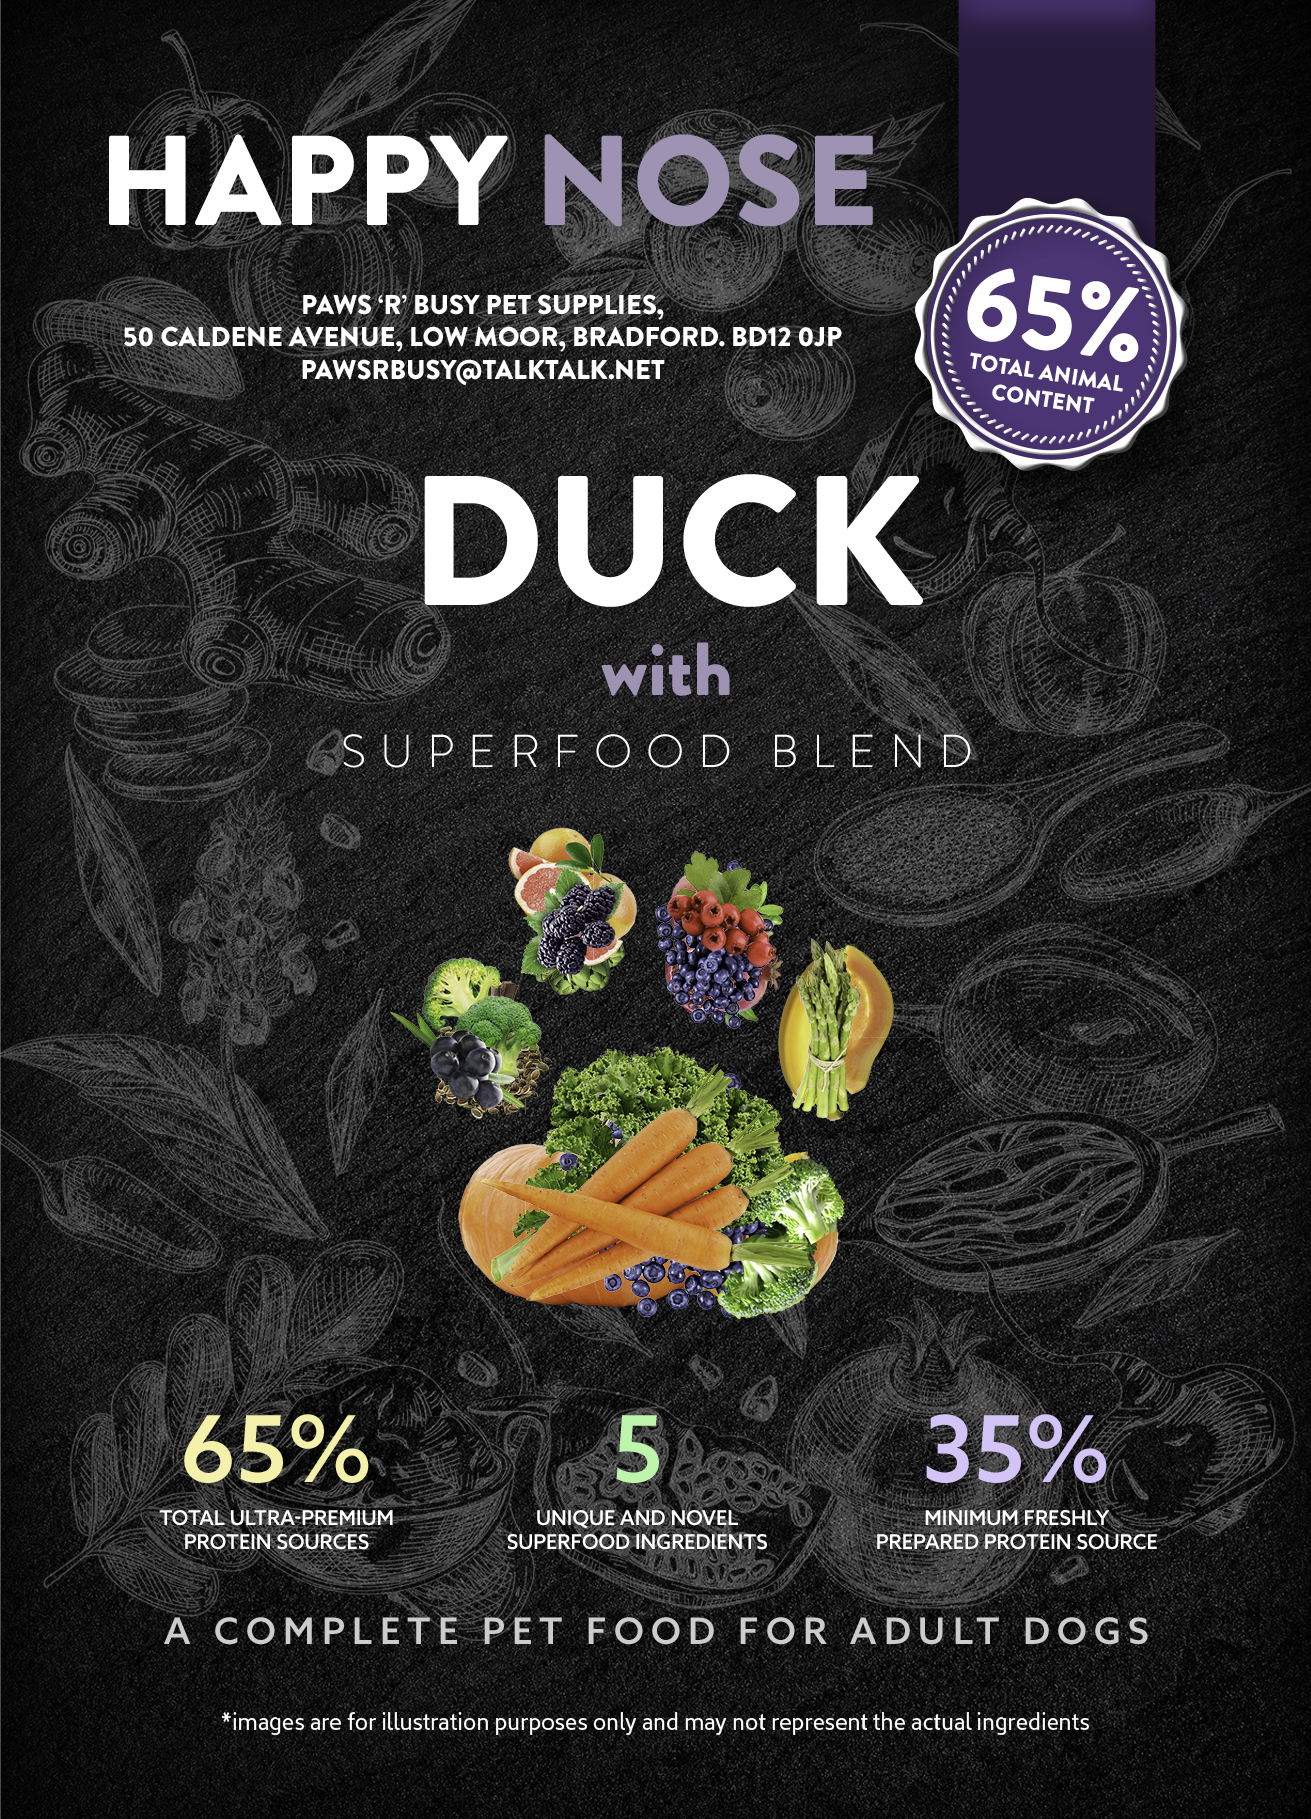 Sample Packs – 2 X 100g Superfood Duck Adult